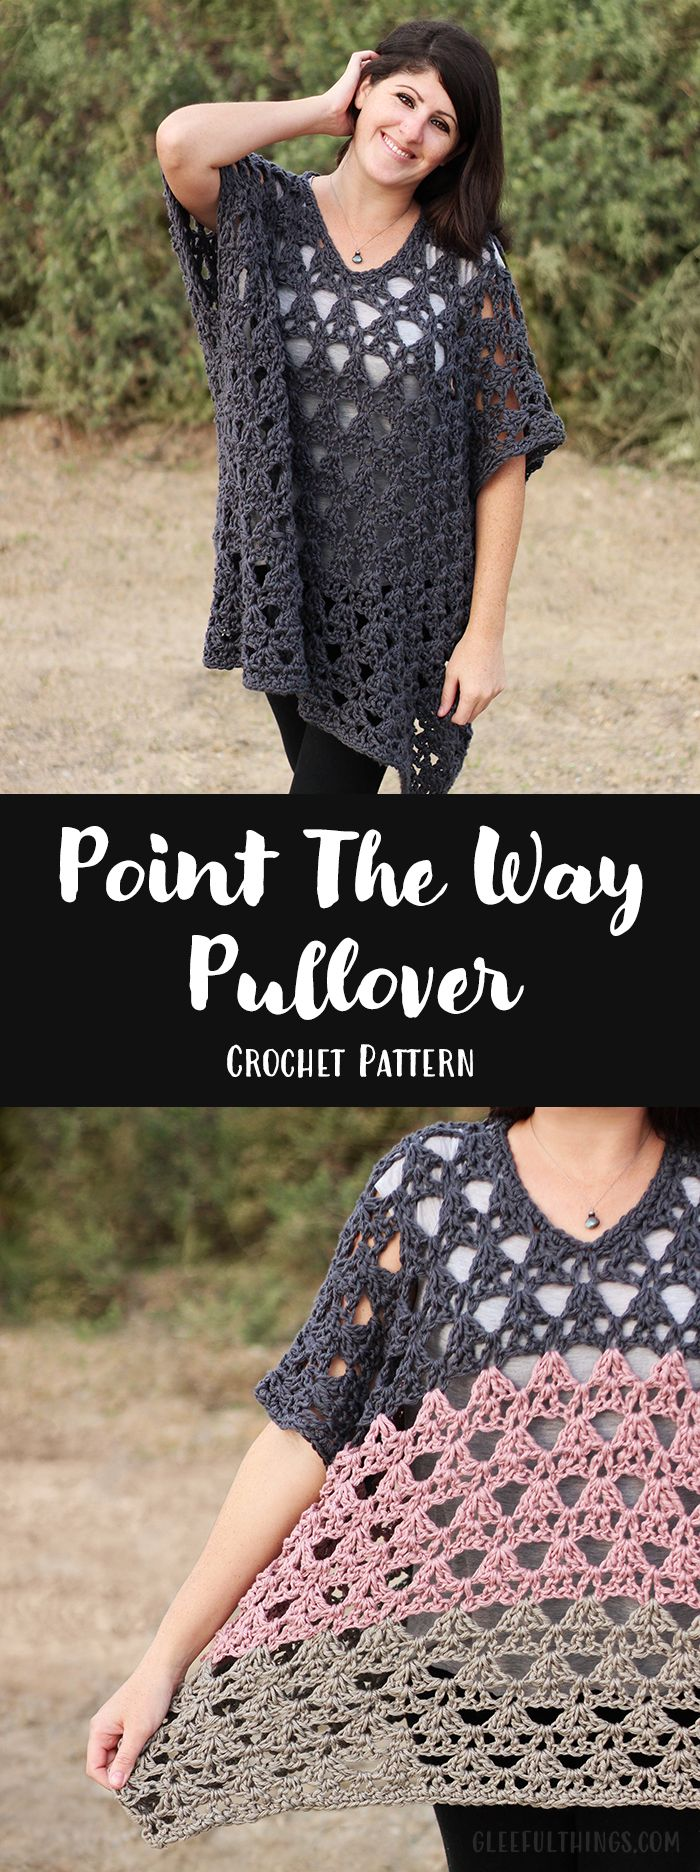 New Crochet Pattern: Point The Way Pullover